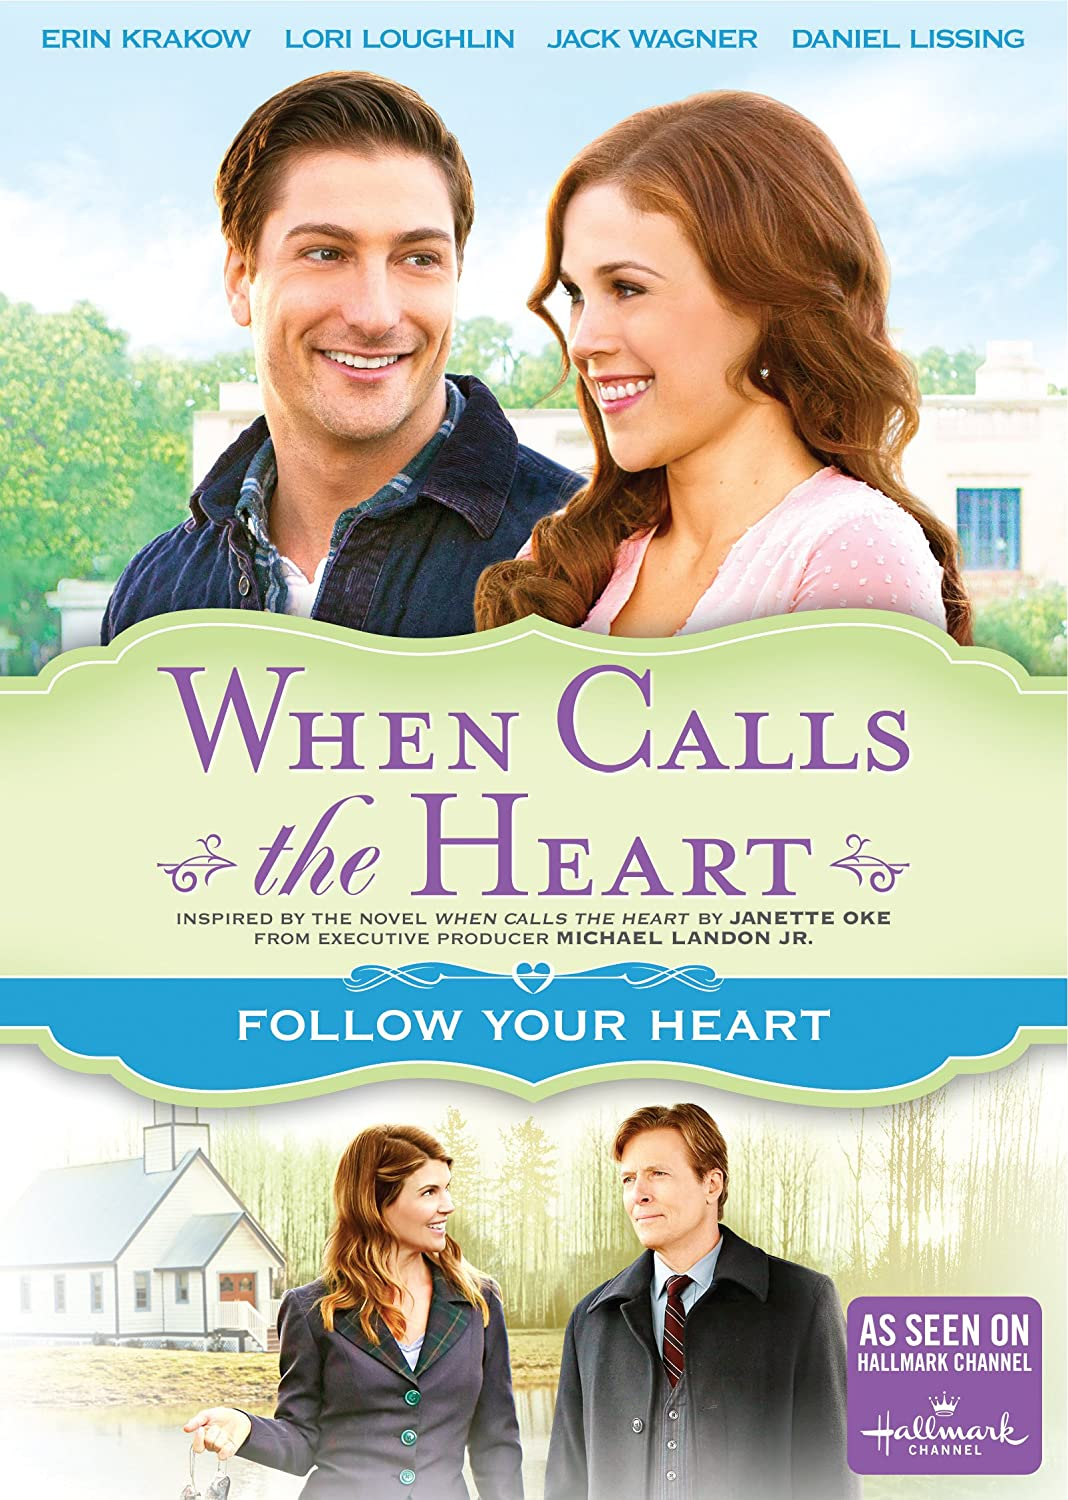 When Calls the Heart: Follow Your Heart - DVD image